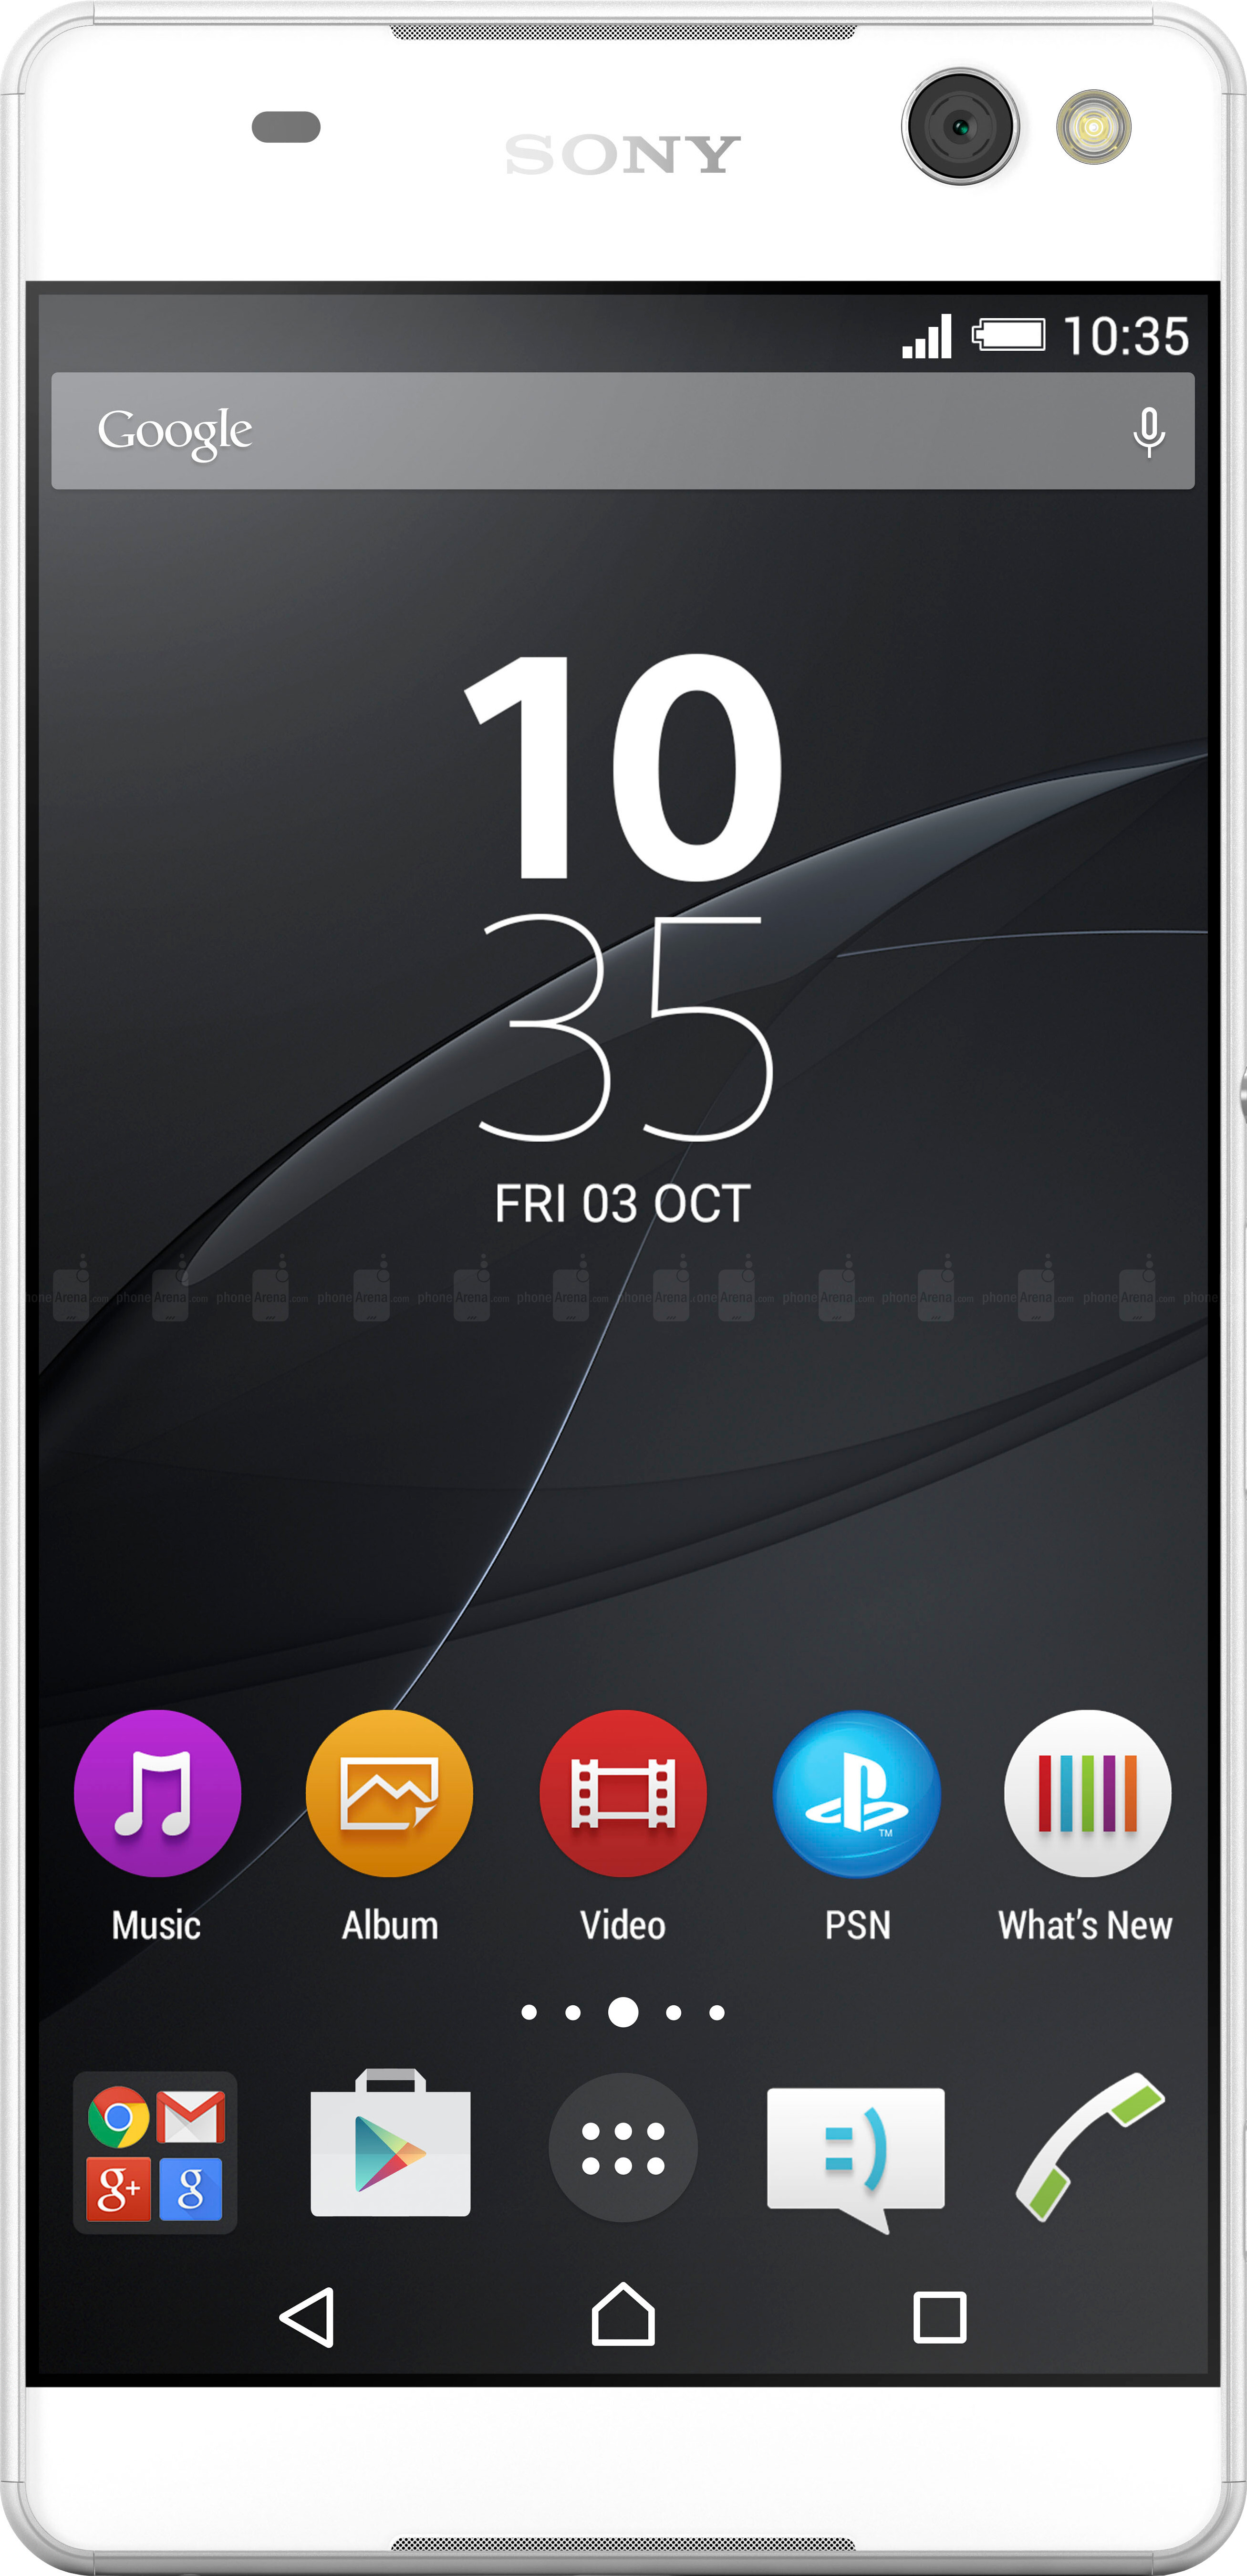 Sony Xperia M2 Aqua: technical specifications, comparison with competitors and reviews 3